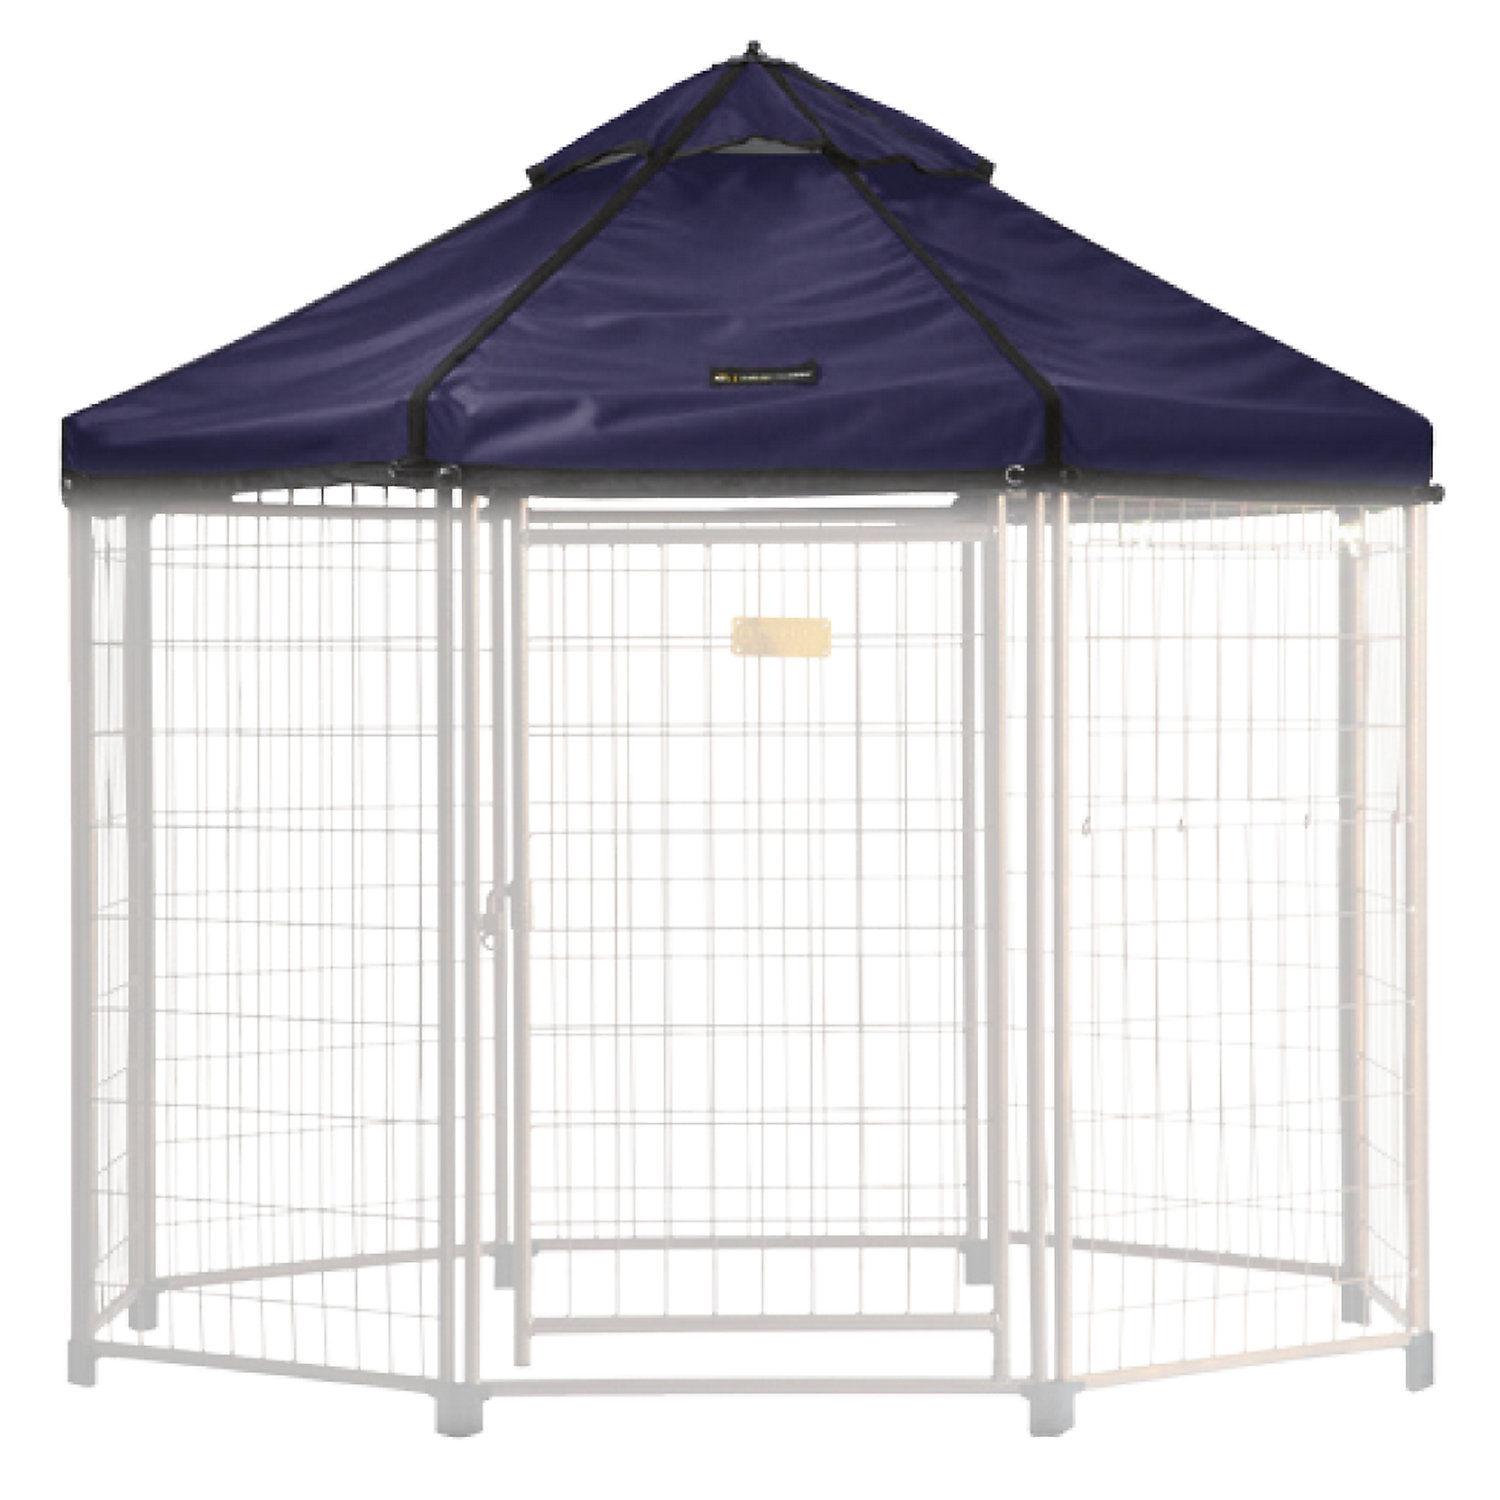 Advantek Select Pet Gazebo Lifestyle Cover Blue Medium